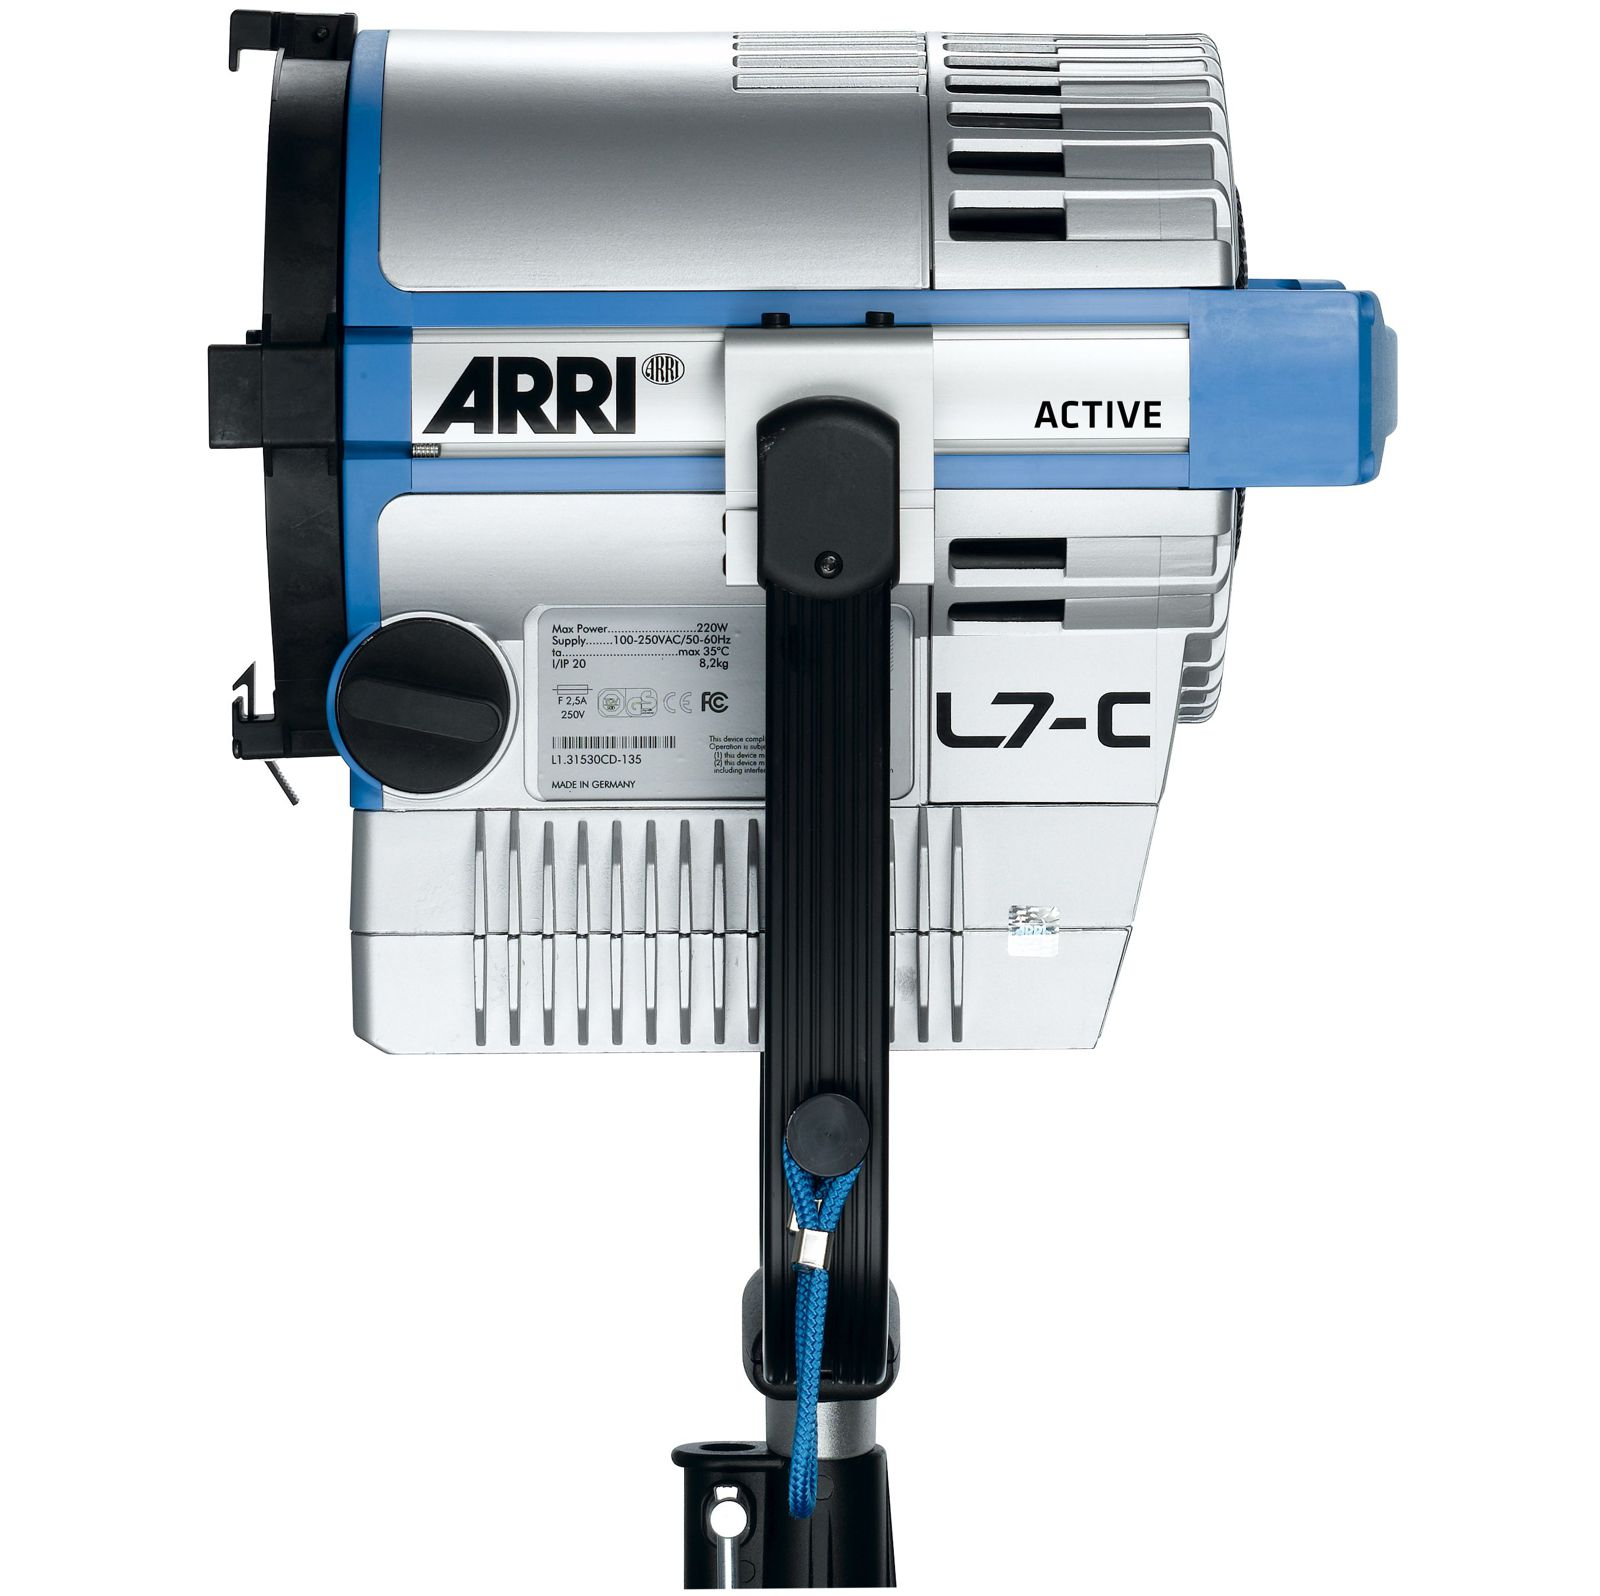 Прибор ARRI L7-C L1.0003646 (LE2, Hanging, Blue/Silver, 1.5 m cable with Bare Ends)